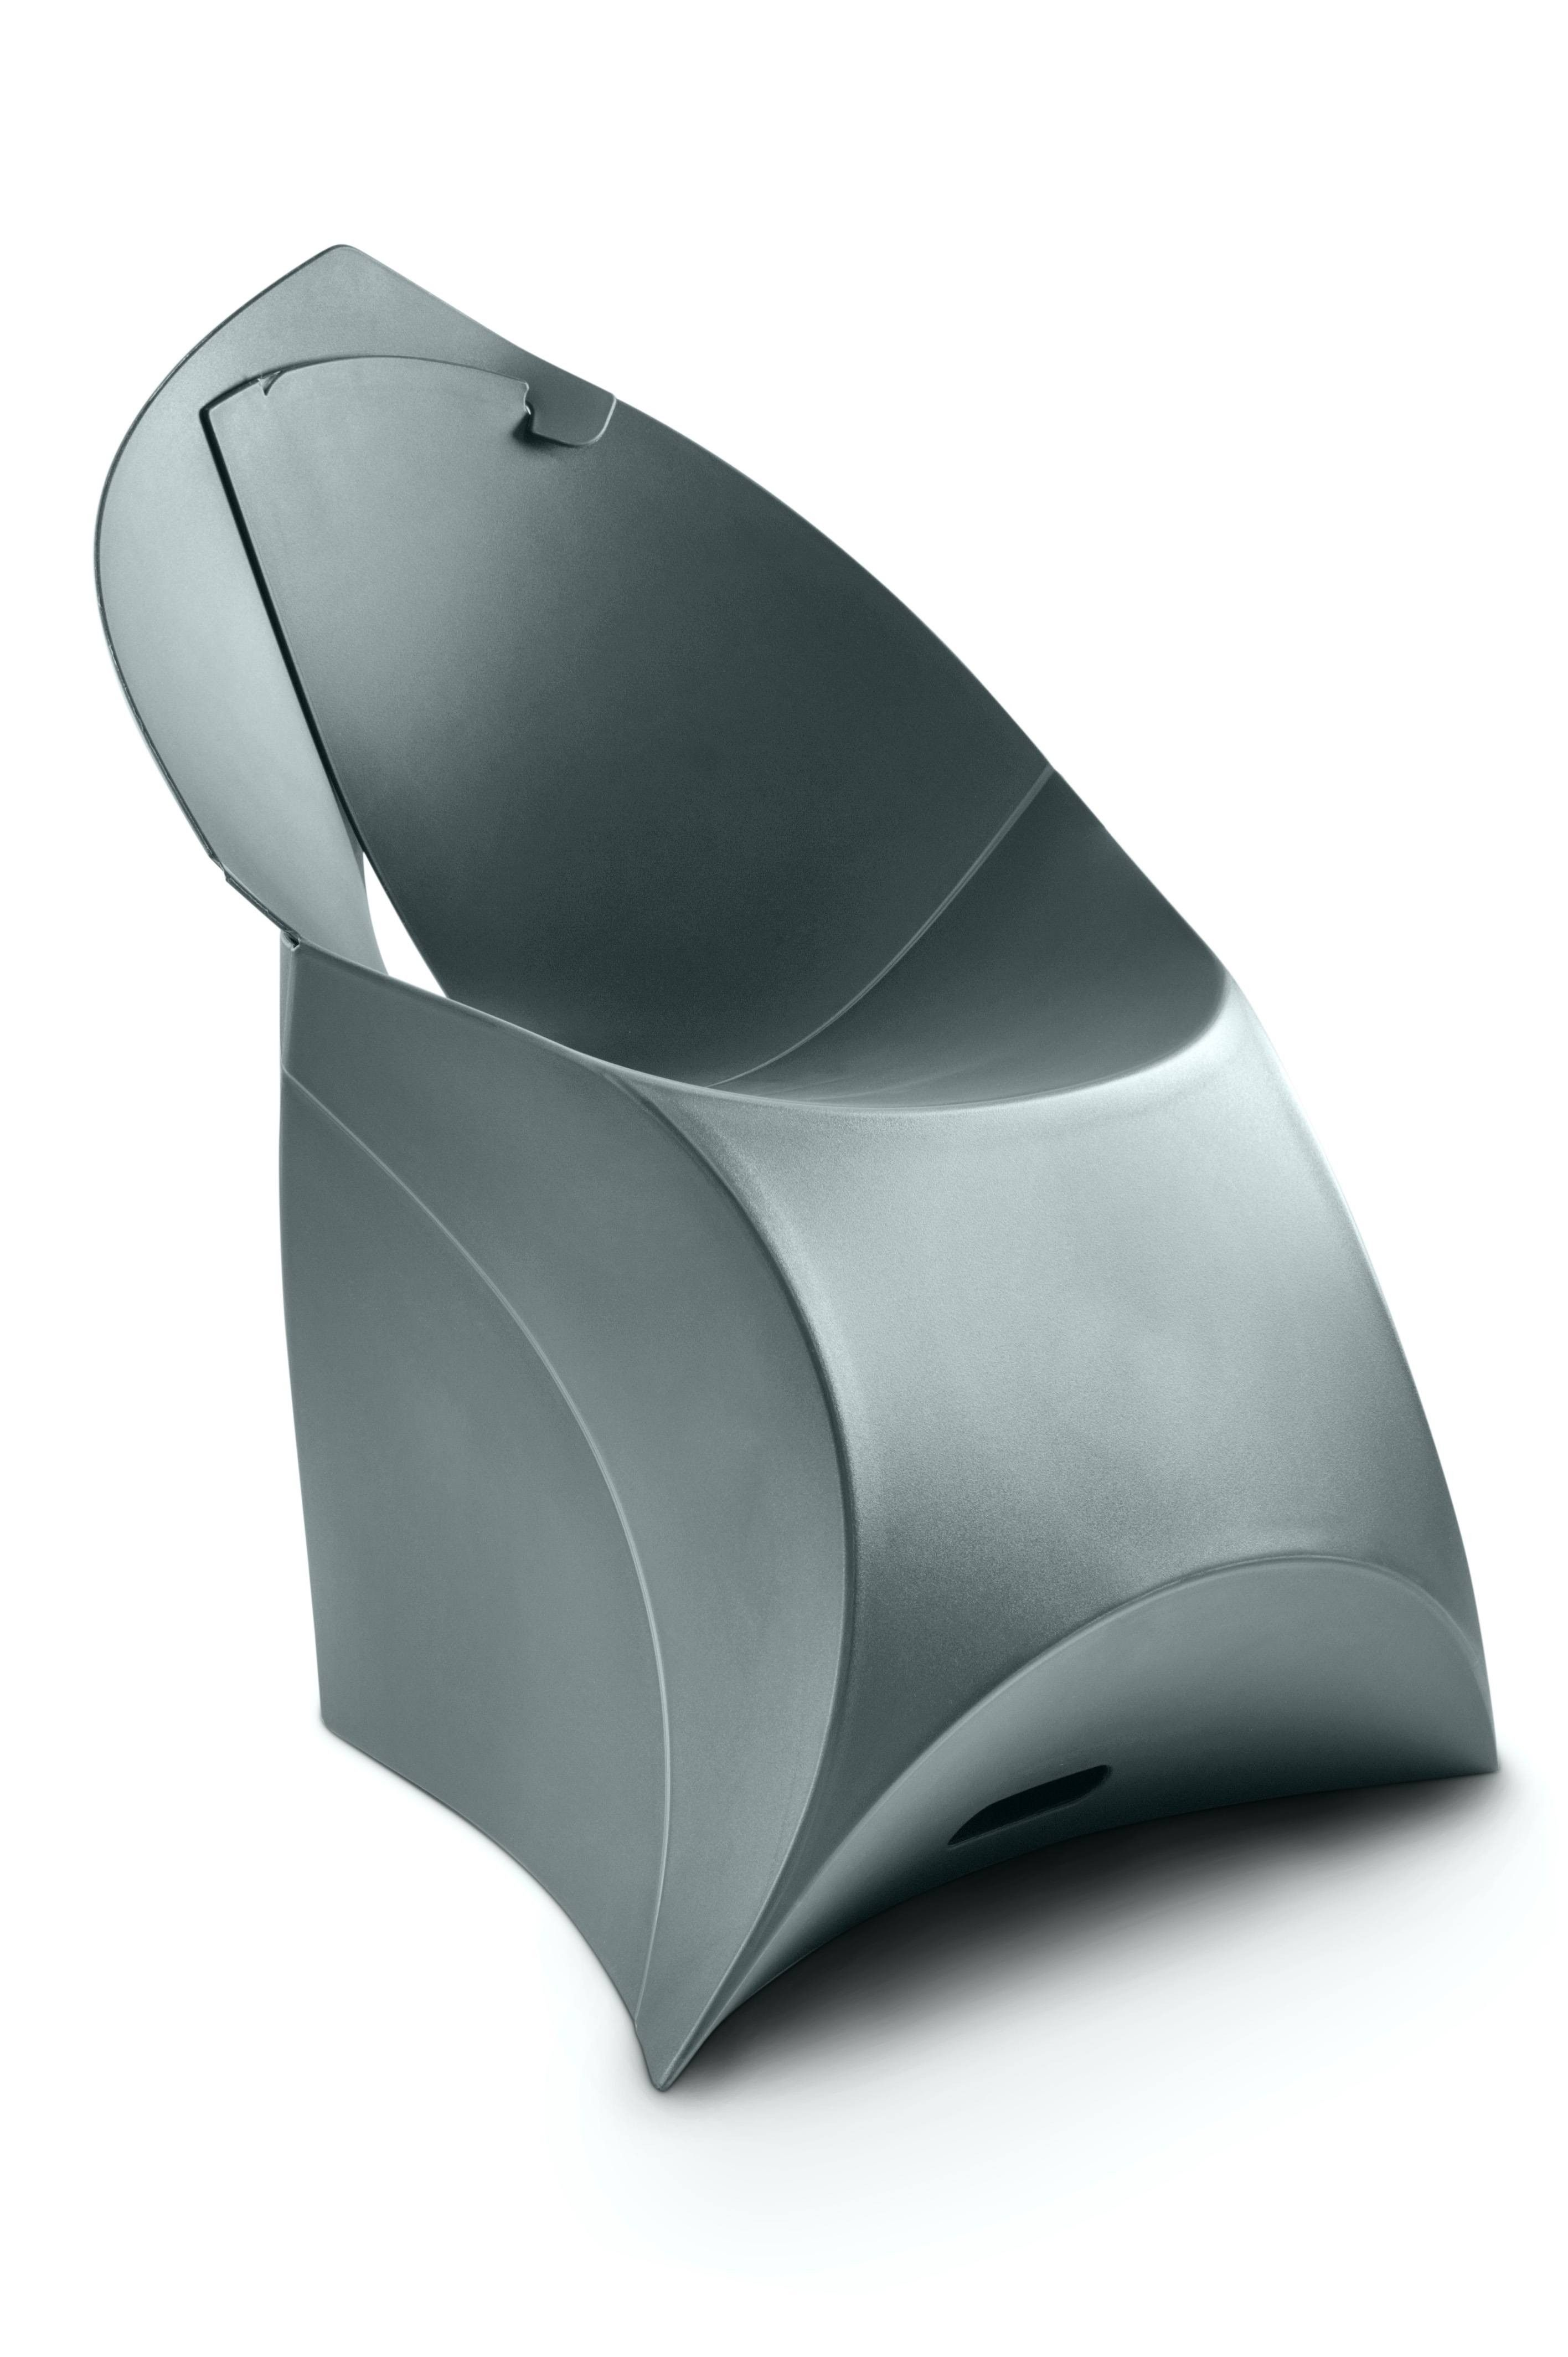 Flux Chair Anthracite Grey Folding Chair Chair Design